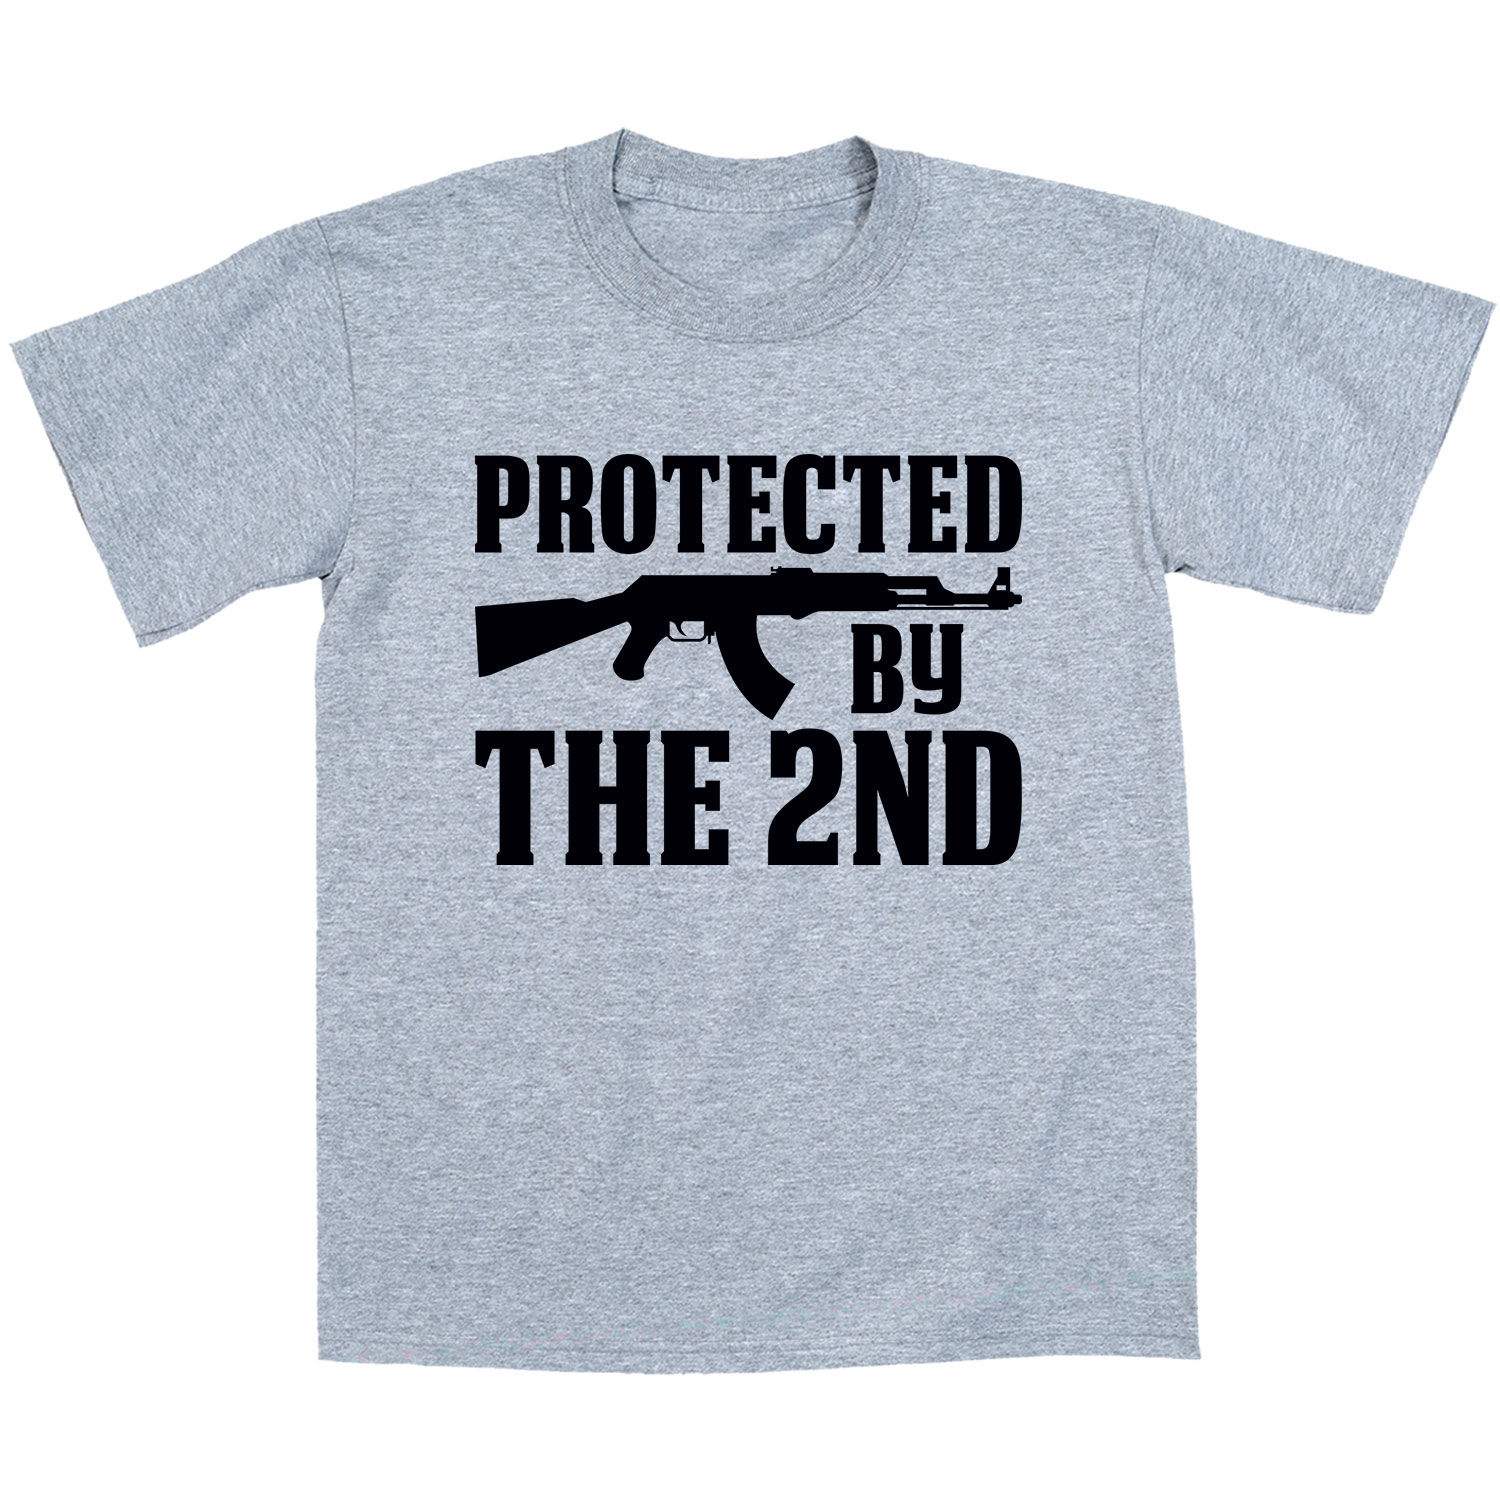 Protected By The 2nd Amendment USA Rights Pistol Novelty Gun Rifle Mens T-Shirt